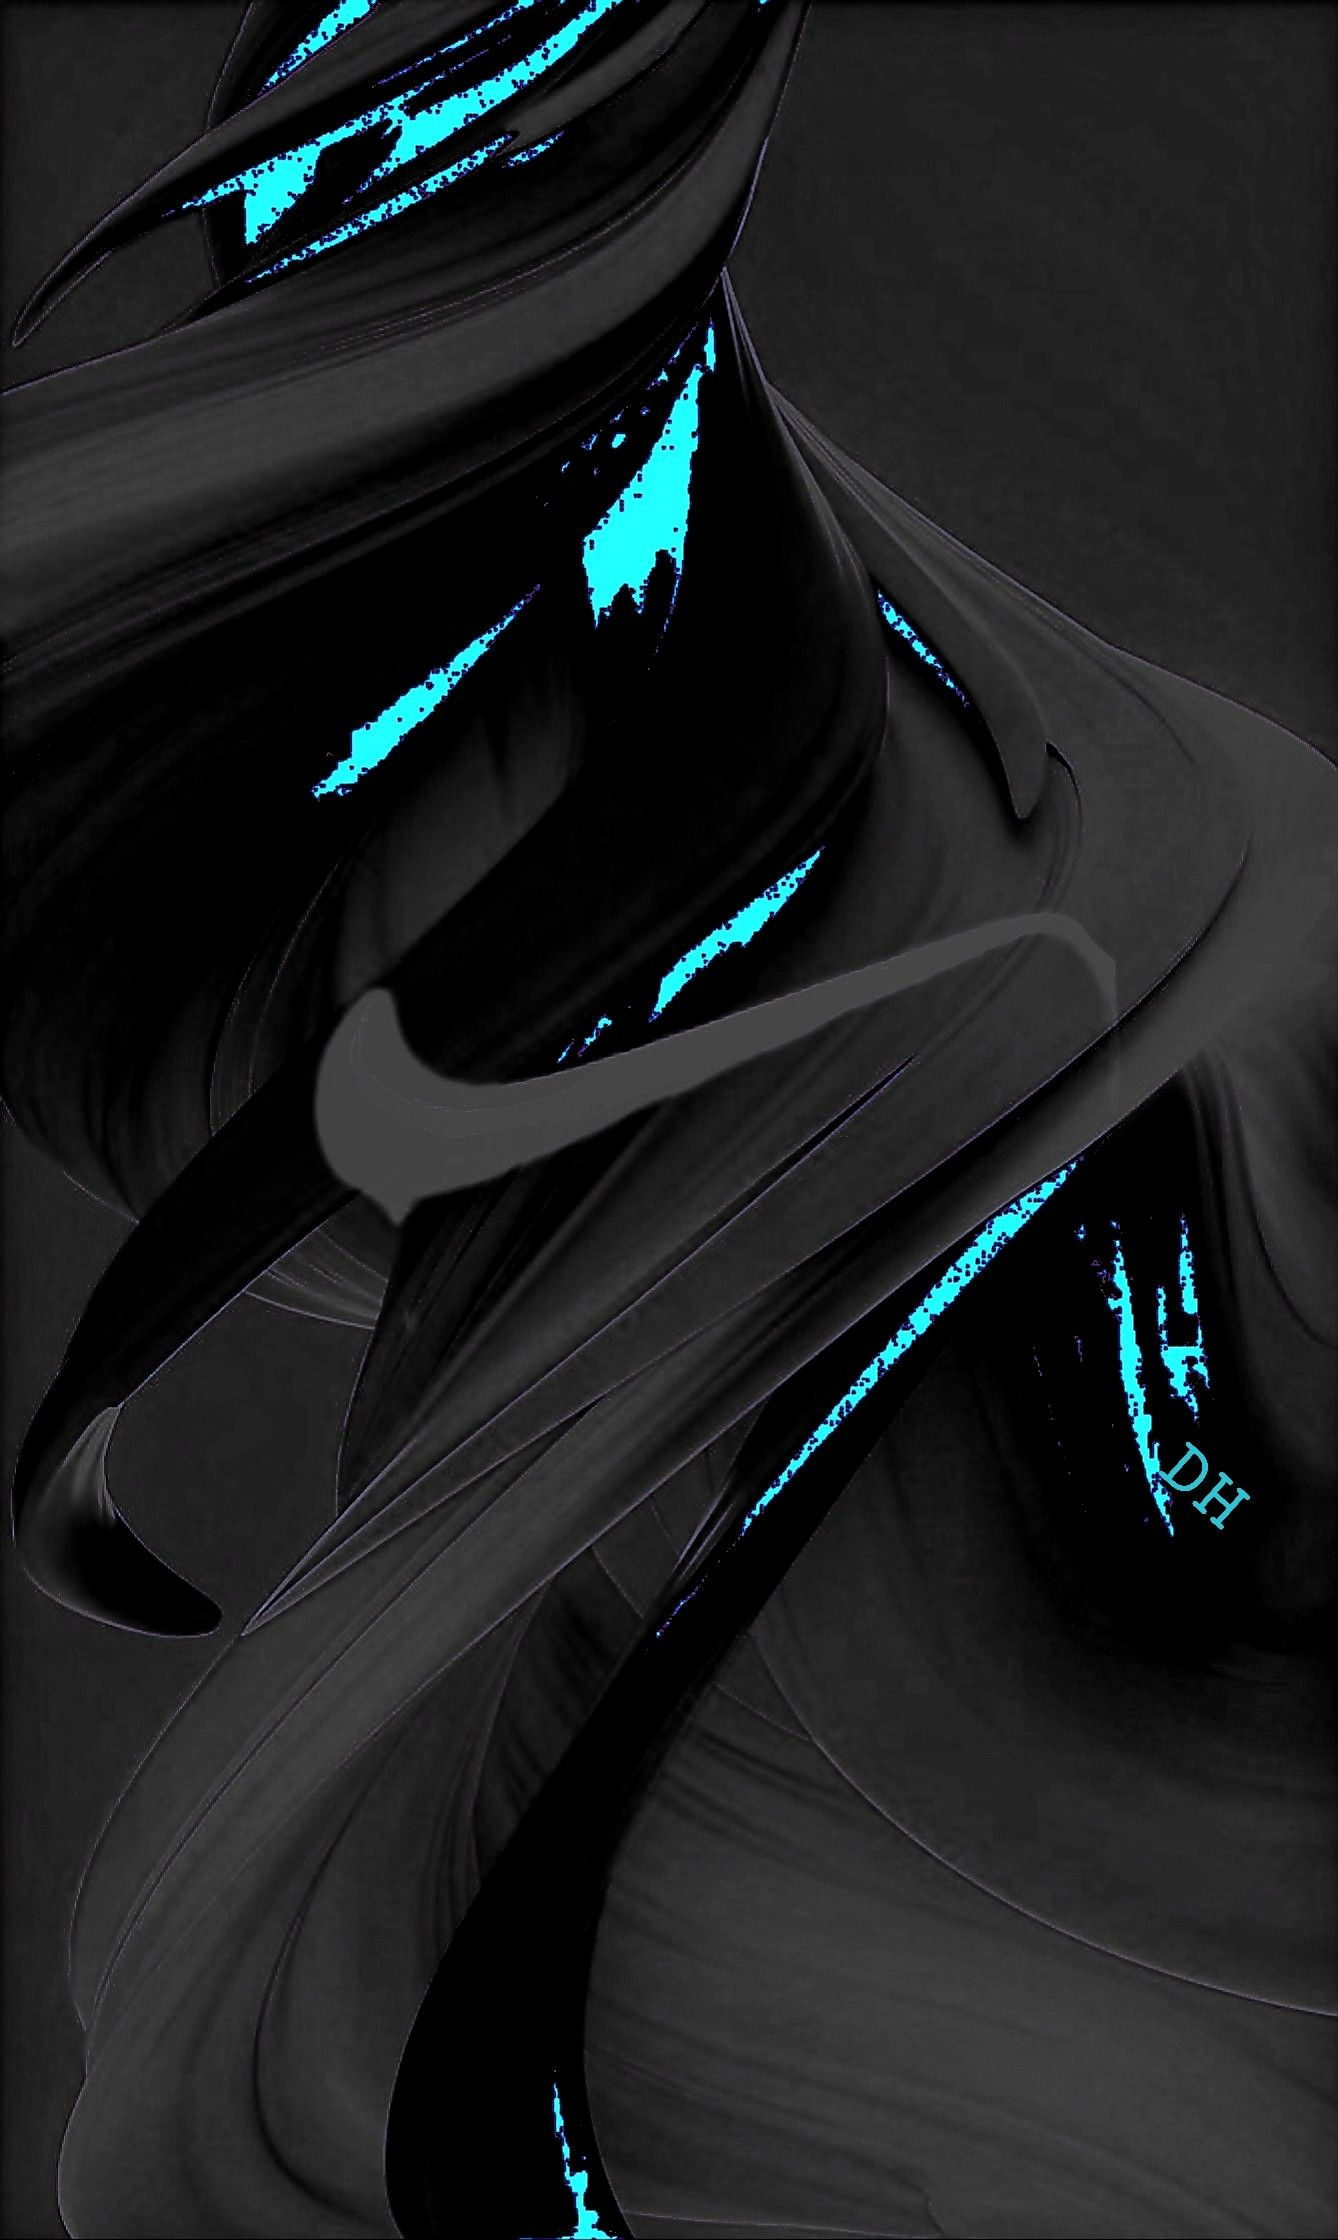 Pin by Hooter983 on Nike wallpaper in 2020 Nike